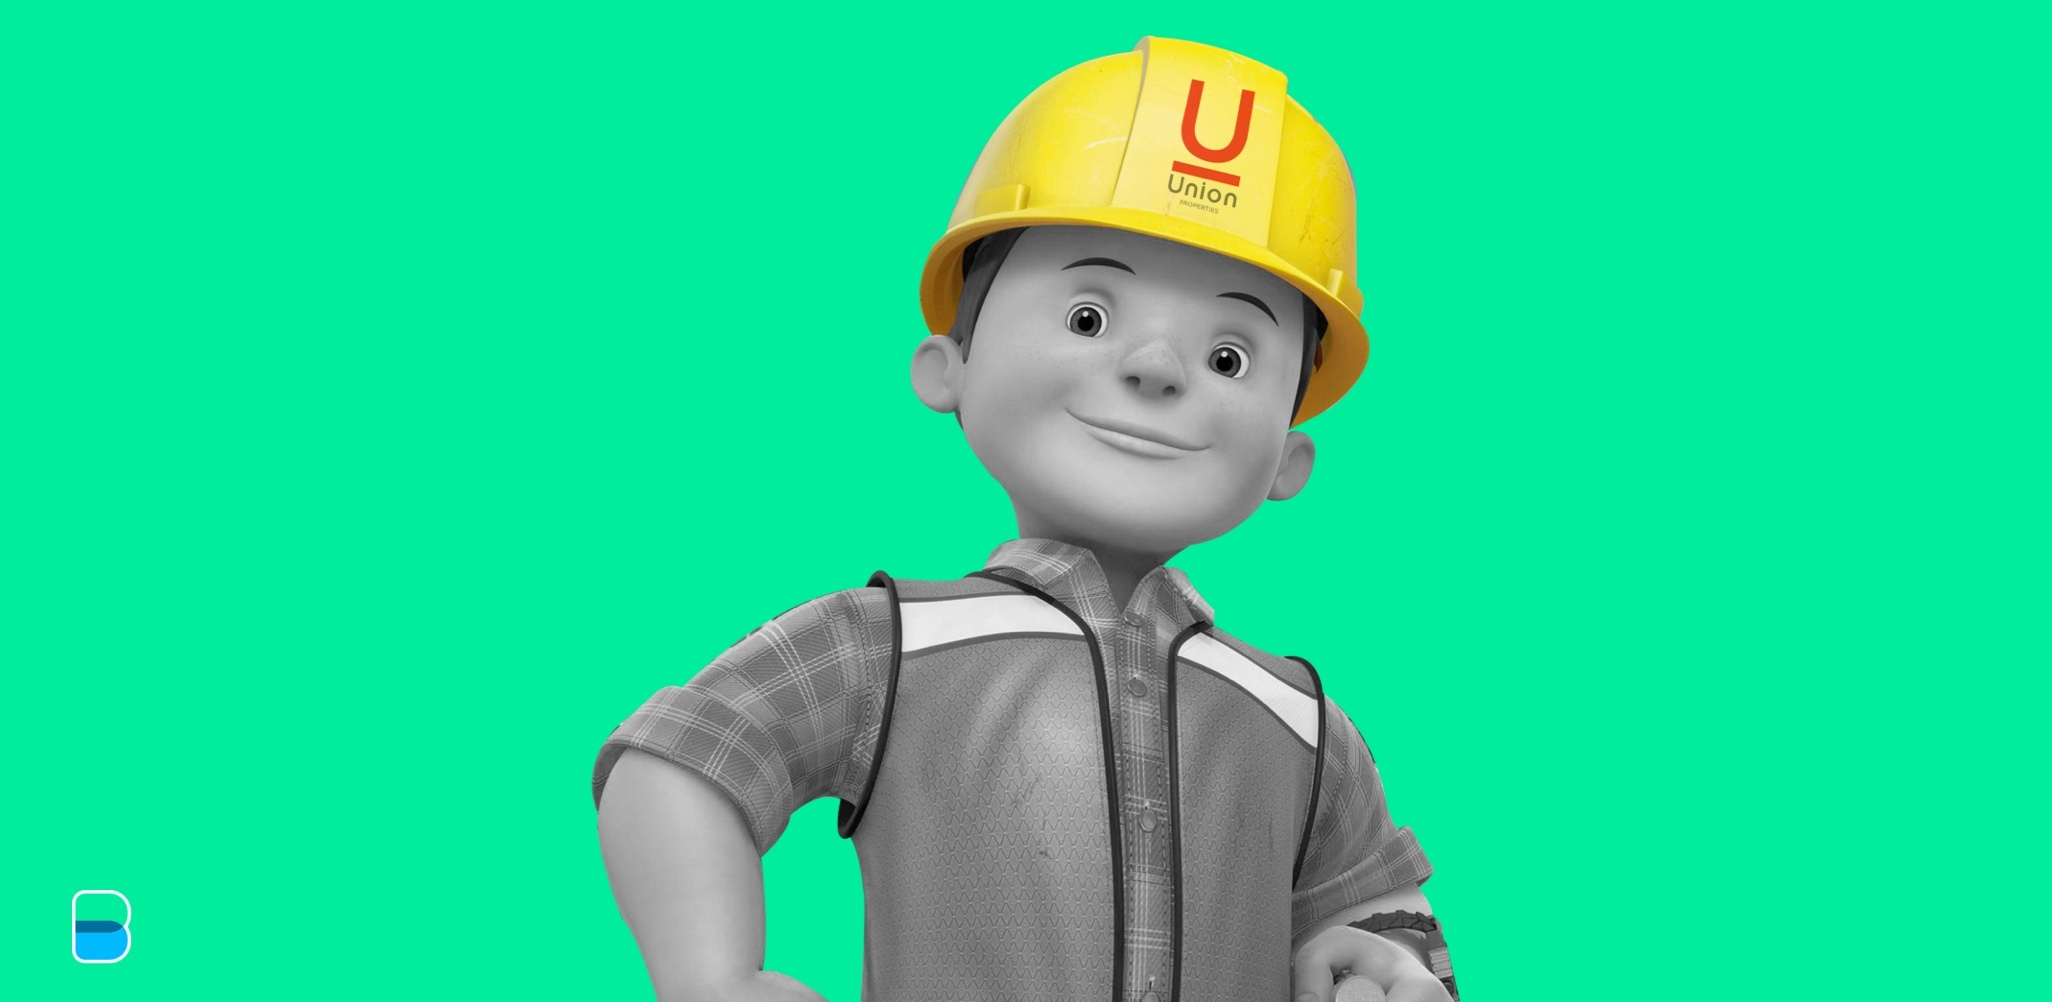 Union Properties taps into its inner Bob the Builder